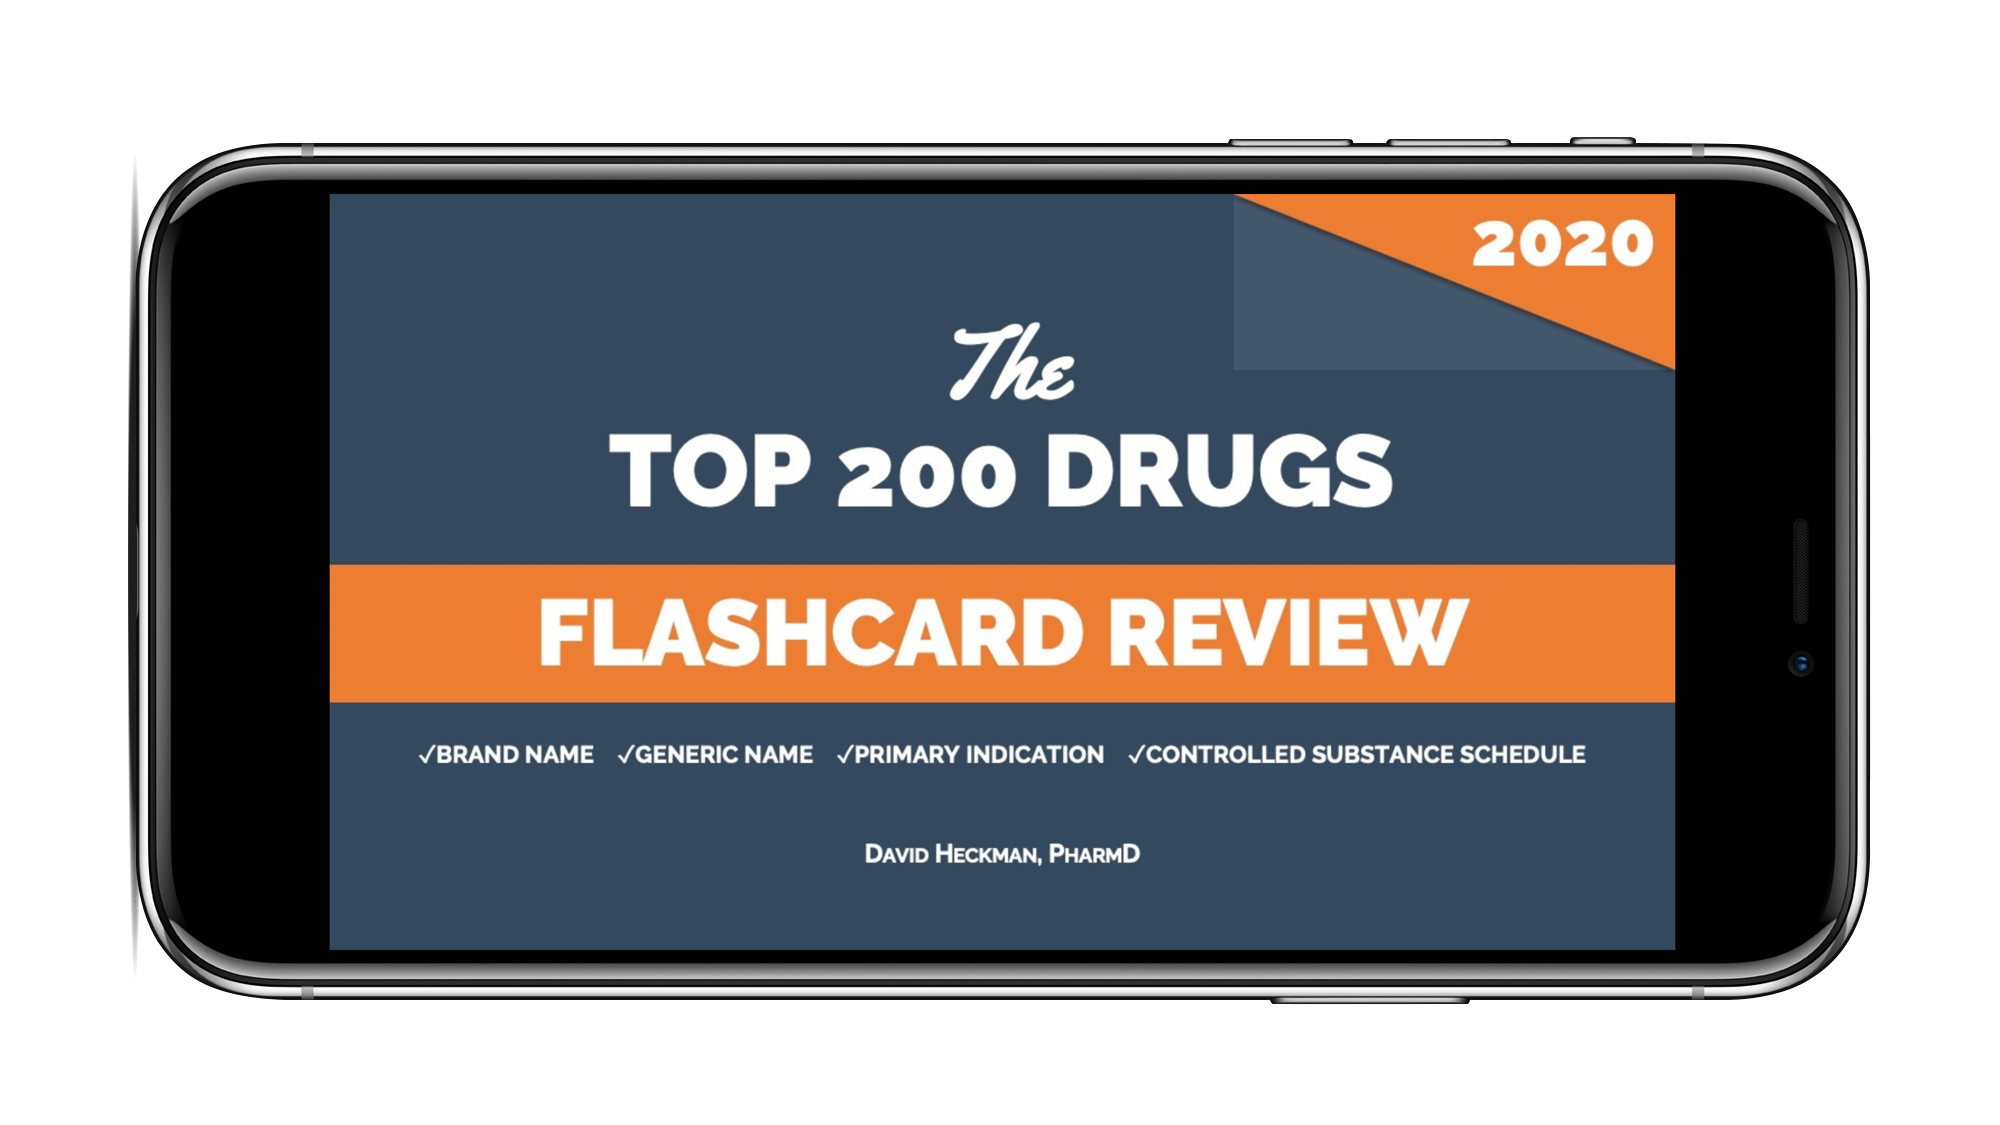 Top 200 Drugs Flashcard Review for 2020